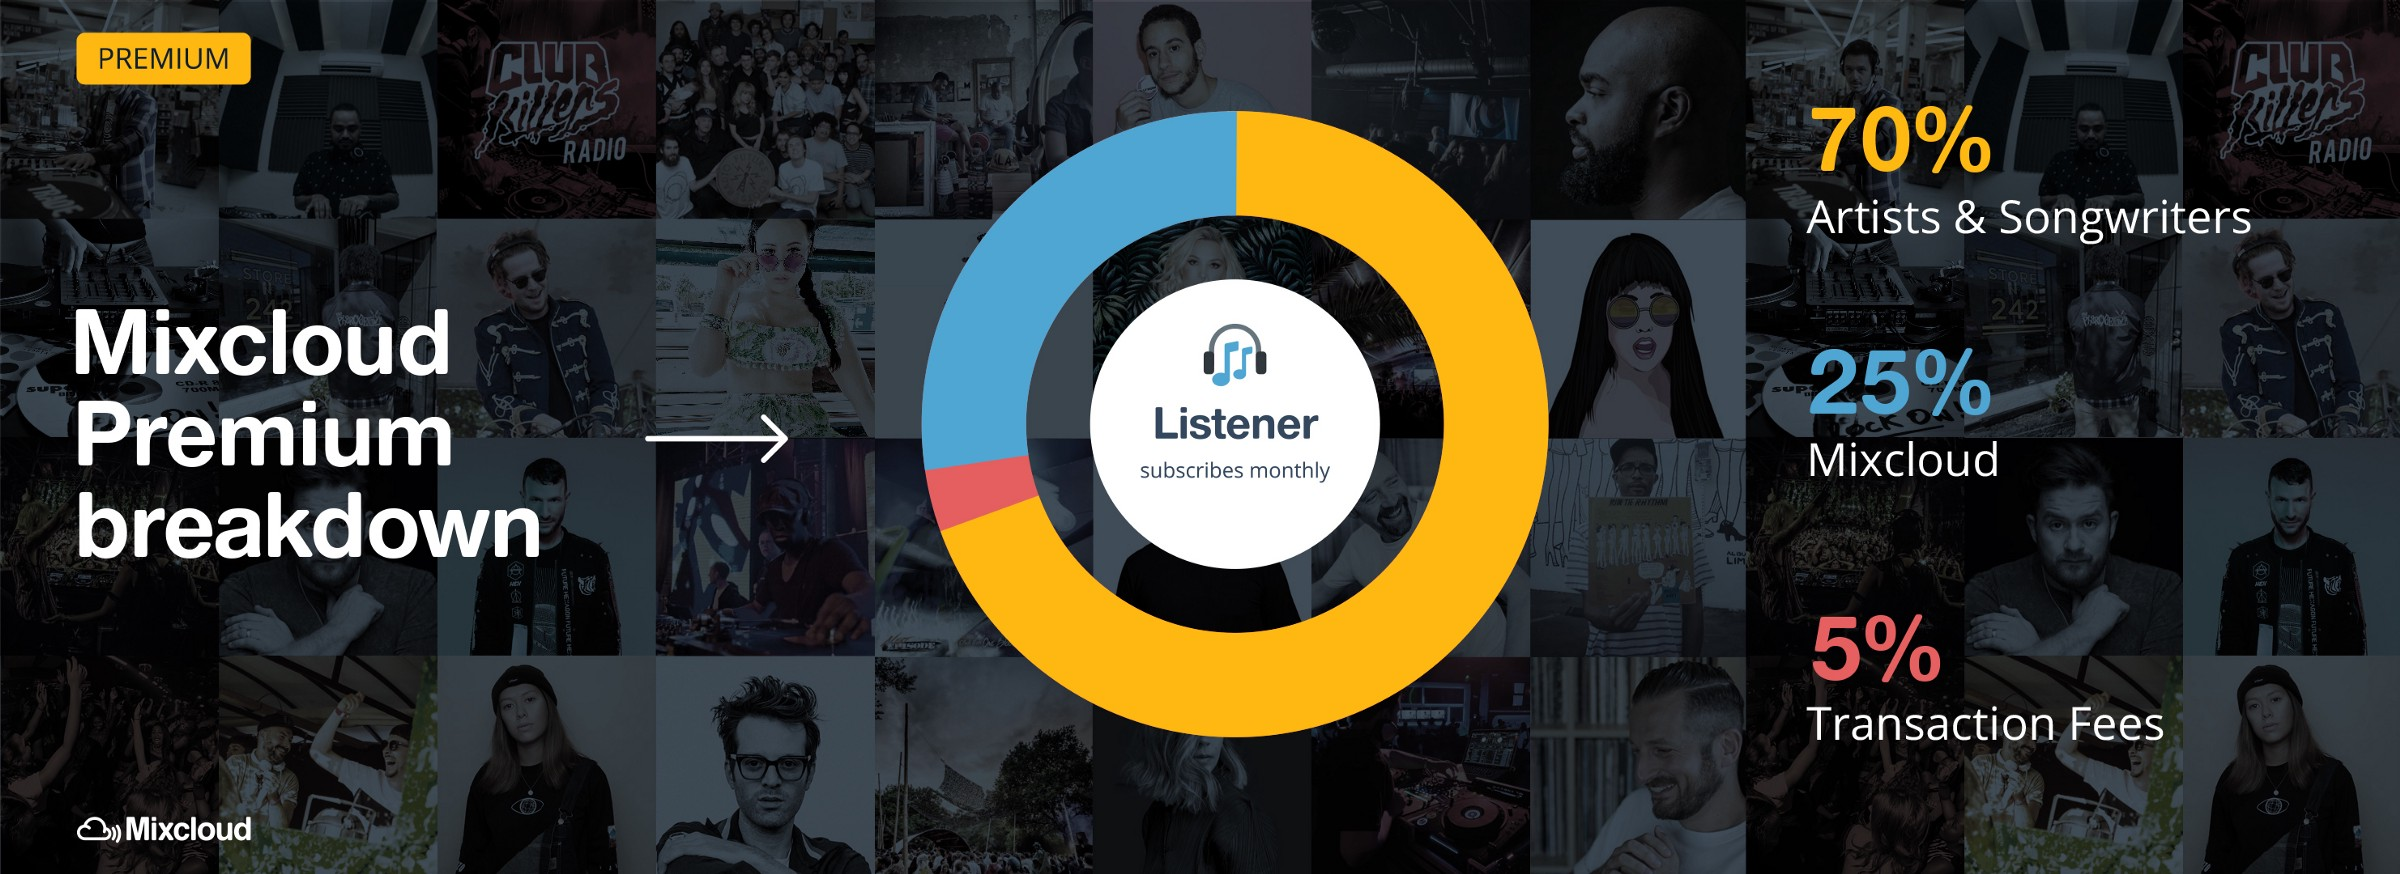 Mixcloud To Limit Free Playback (Slightly), Aims To Build Paid